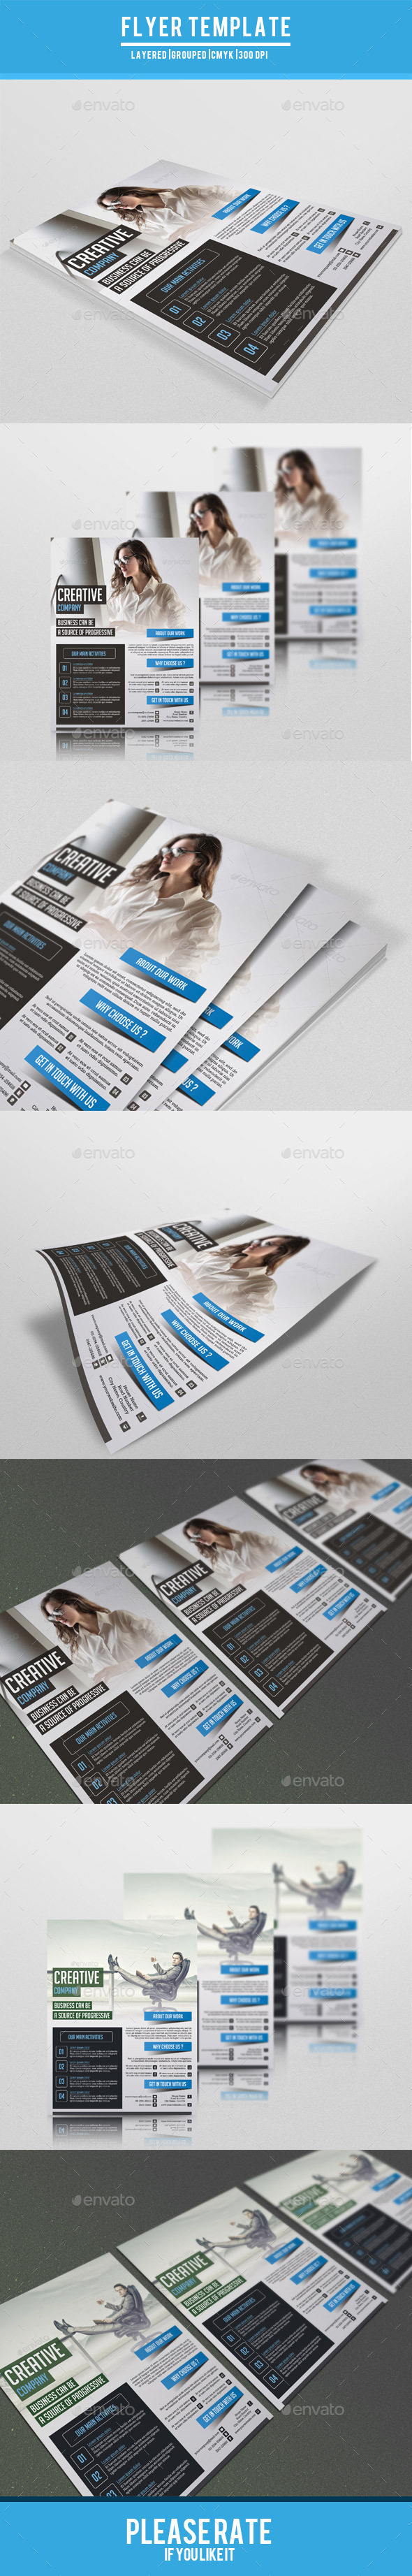 Business Flyer Template-V144 - Corporate Flyers